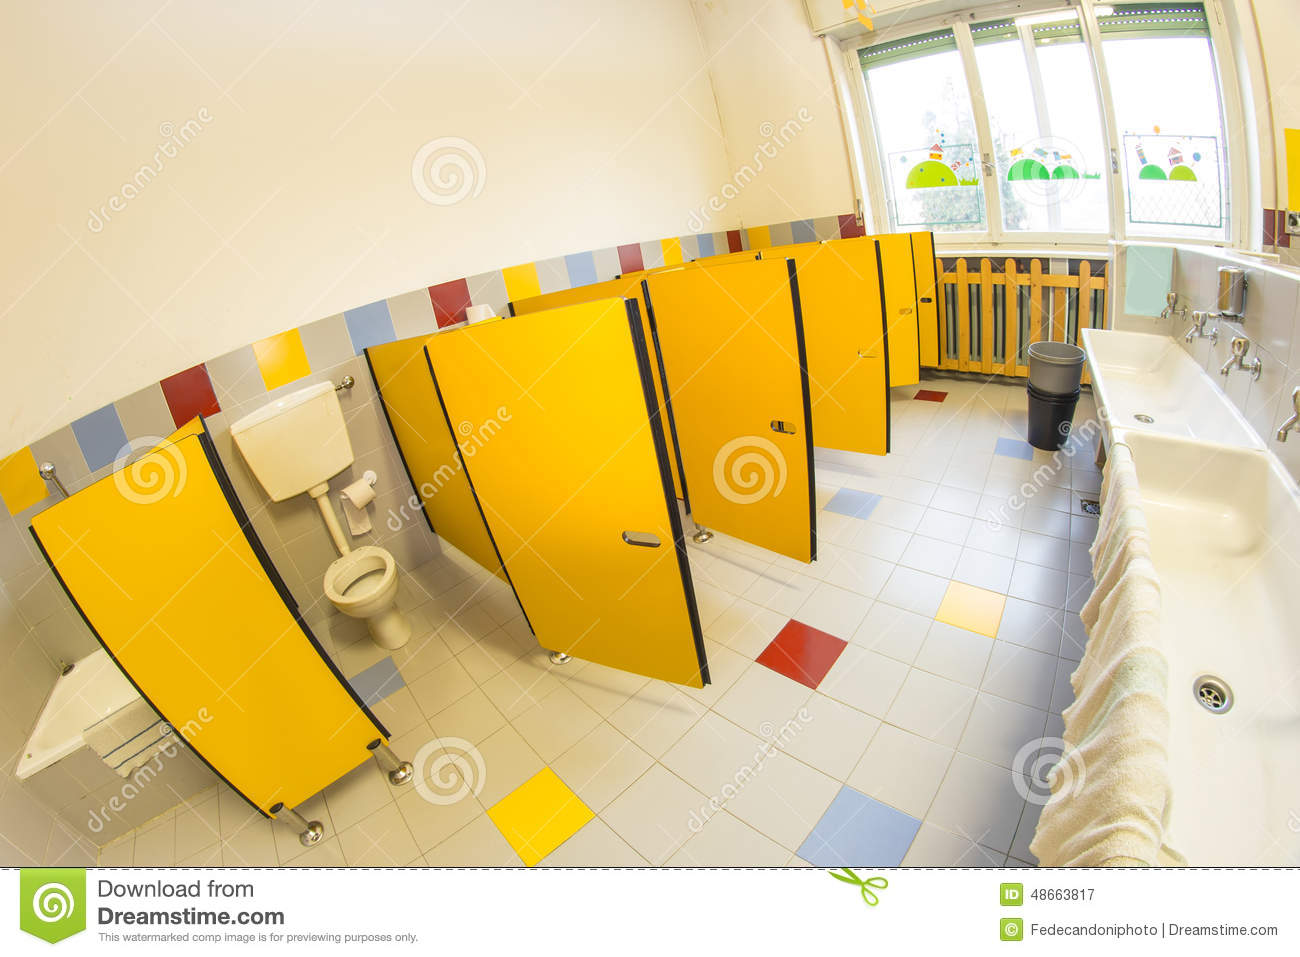 Badezimmer Kindergarten Bathroom Of A School For Children Stock Photo Image